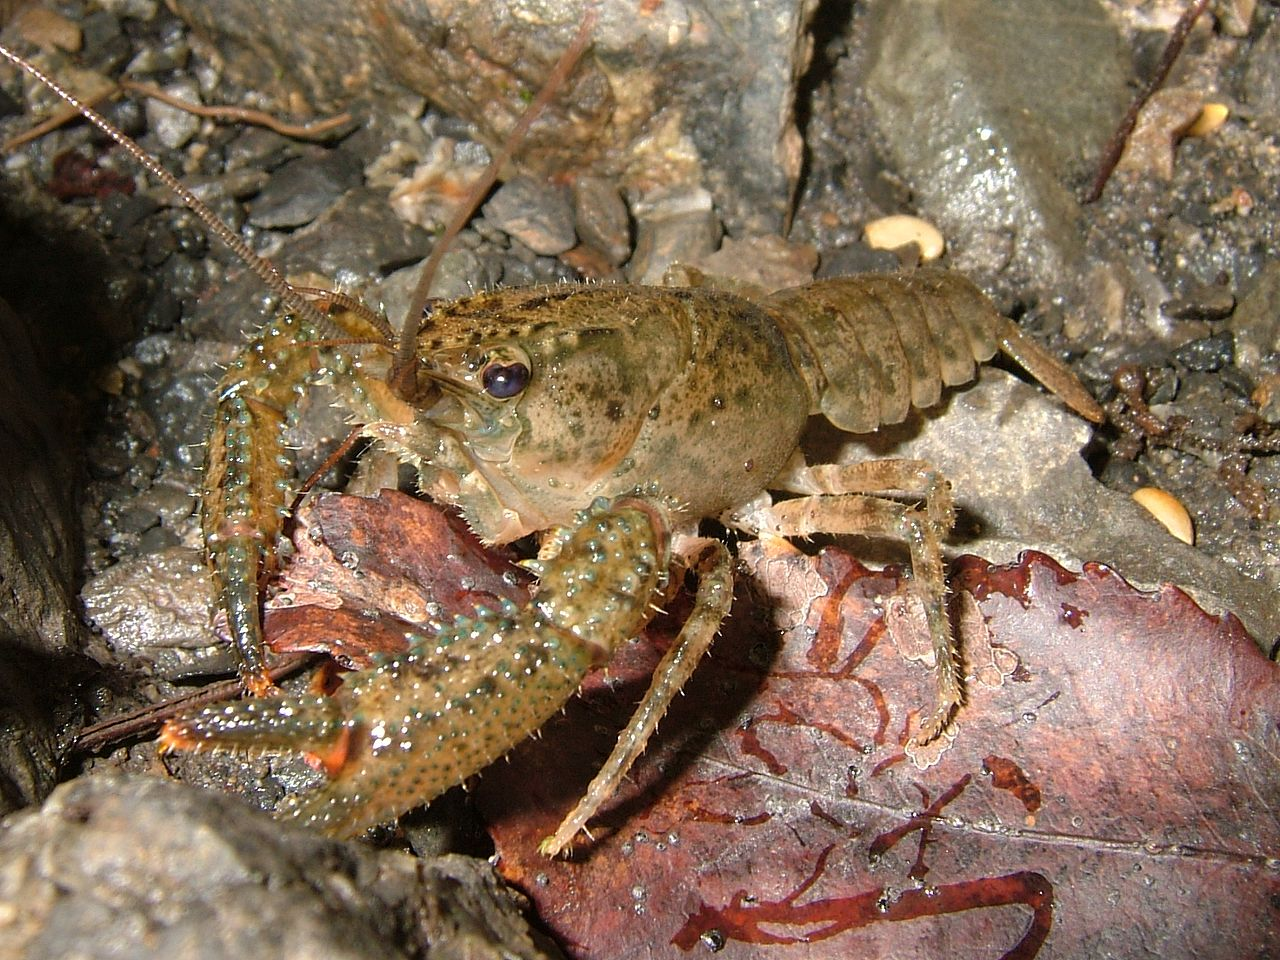 A crayfish Gusmonkeyboy at English Wikipedia - Transferred from en.wikipedia to Commons by Jacob  Robertson using CommonsHelper.